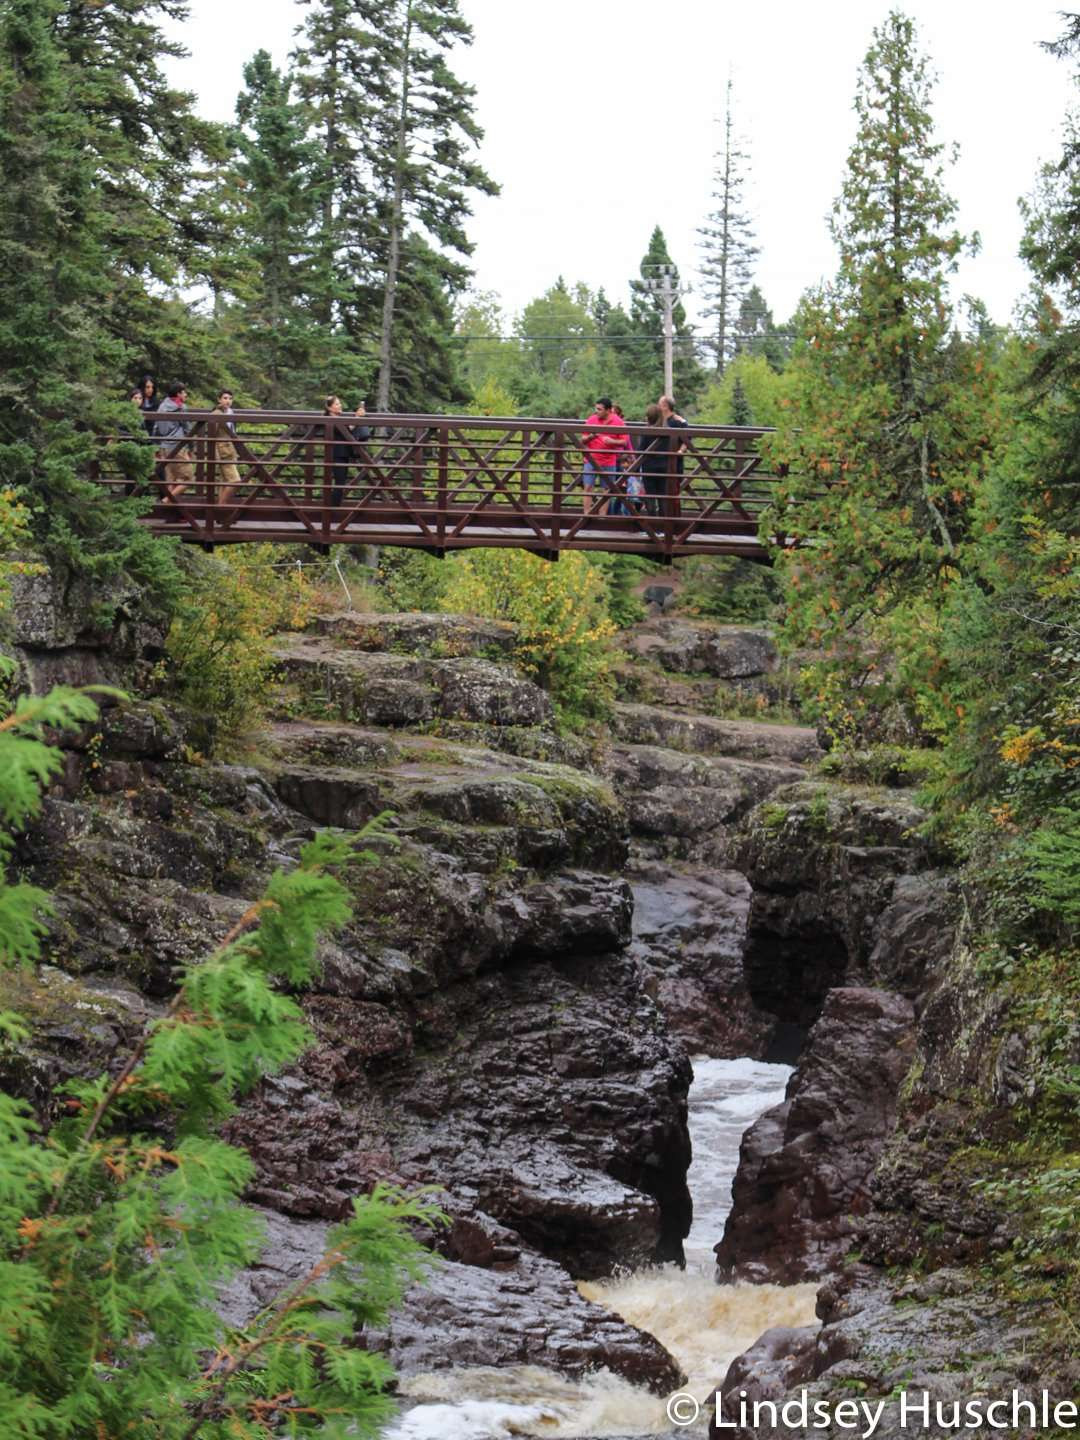 The bridge over the upper gorge at Temperance River State Park is part of the Gitchi-Gami State Trail